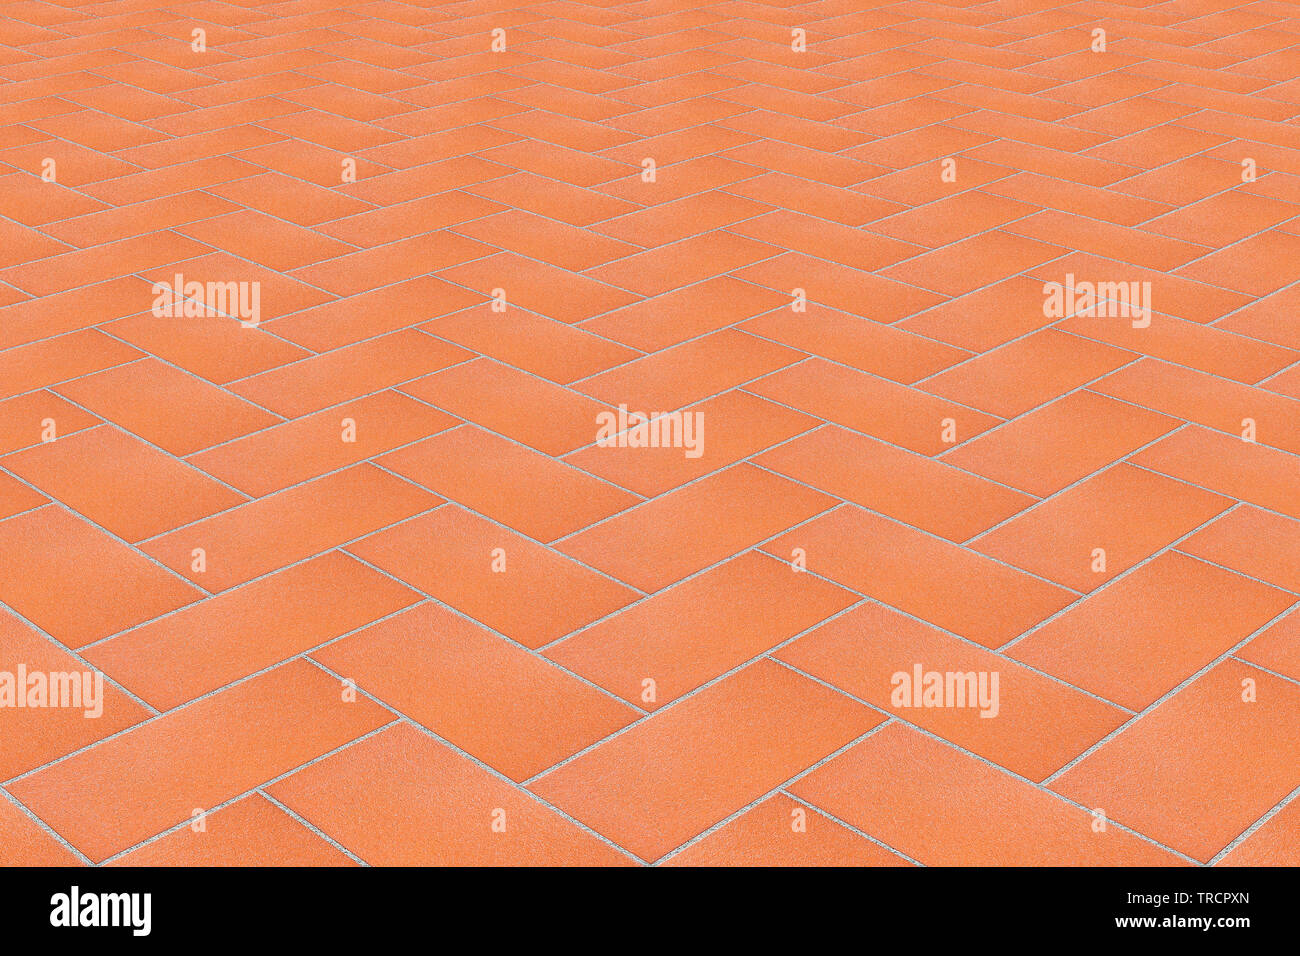 New italian brick pavement for indoor and outdoor use - perspective view - Stock Image